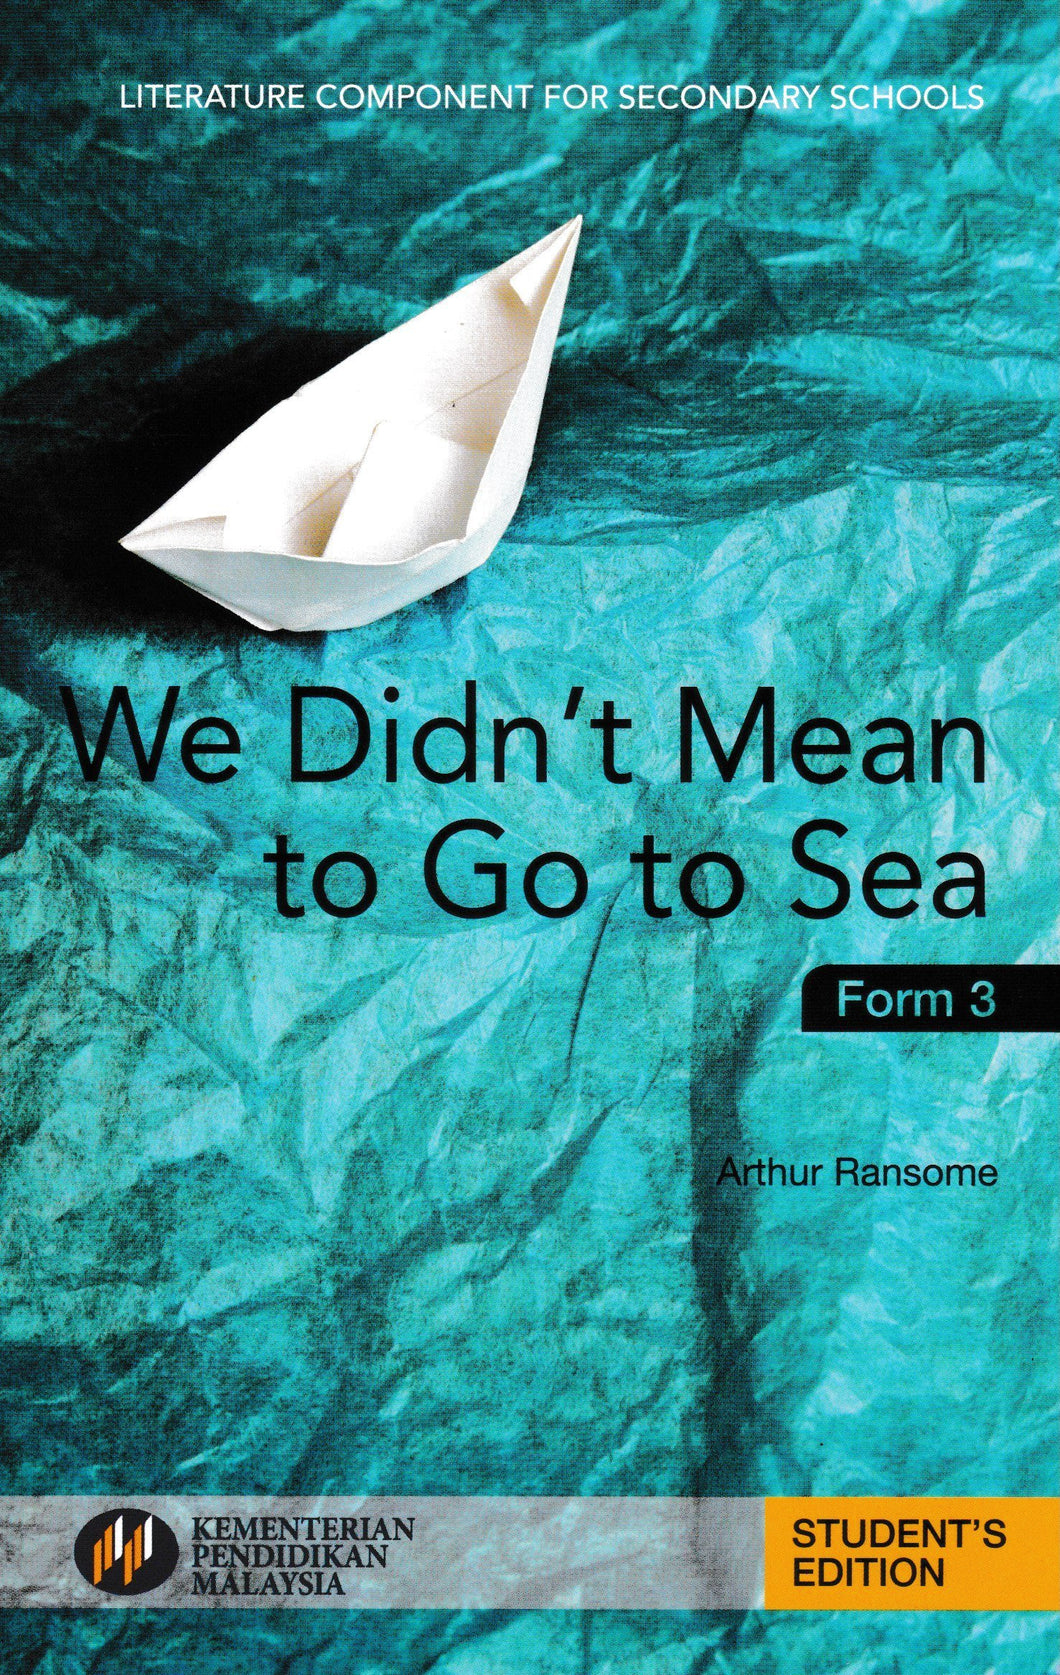 Zirwan: Buku Teks Komsas We Didn't Mean To Go To Sea Form 3 Literature Component Textbook